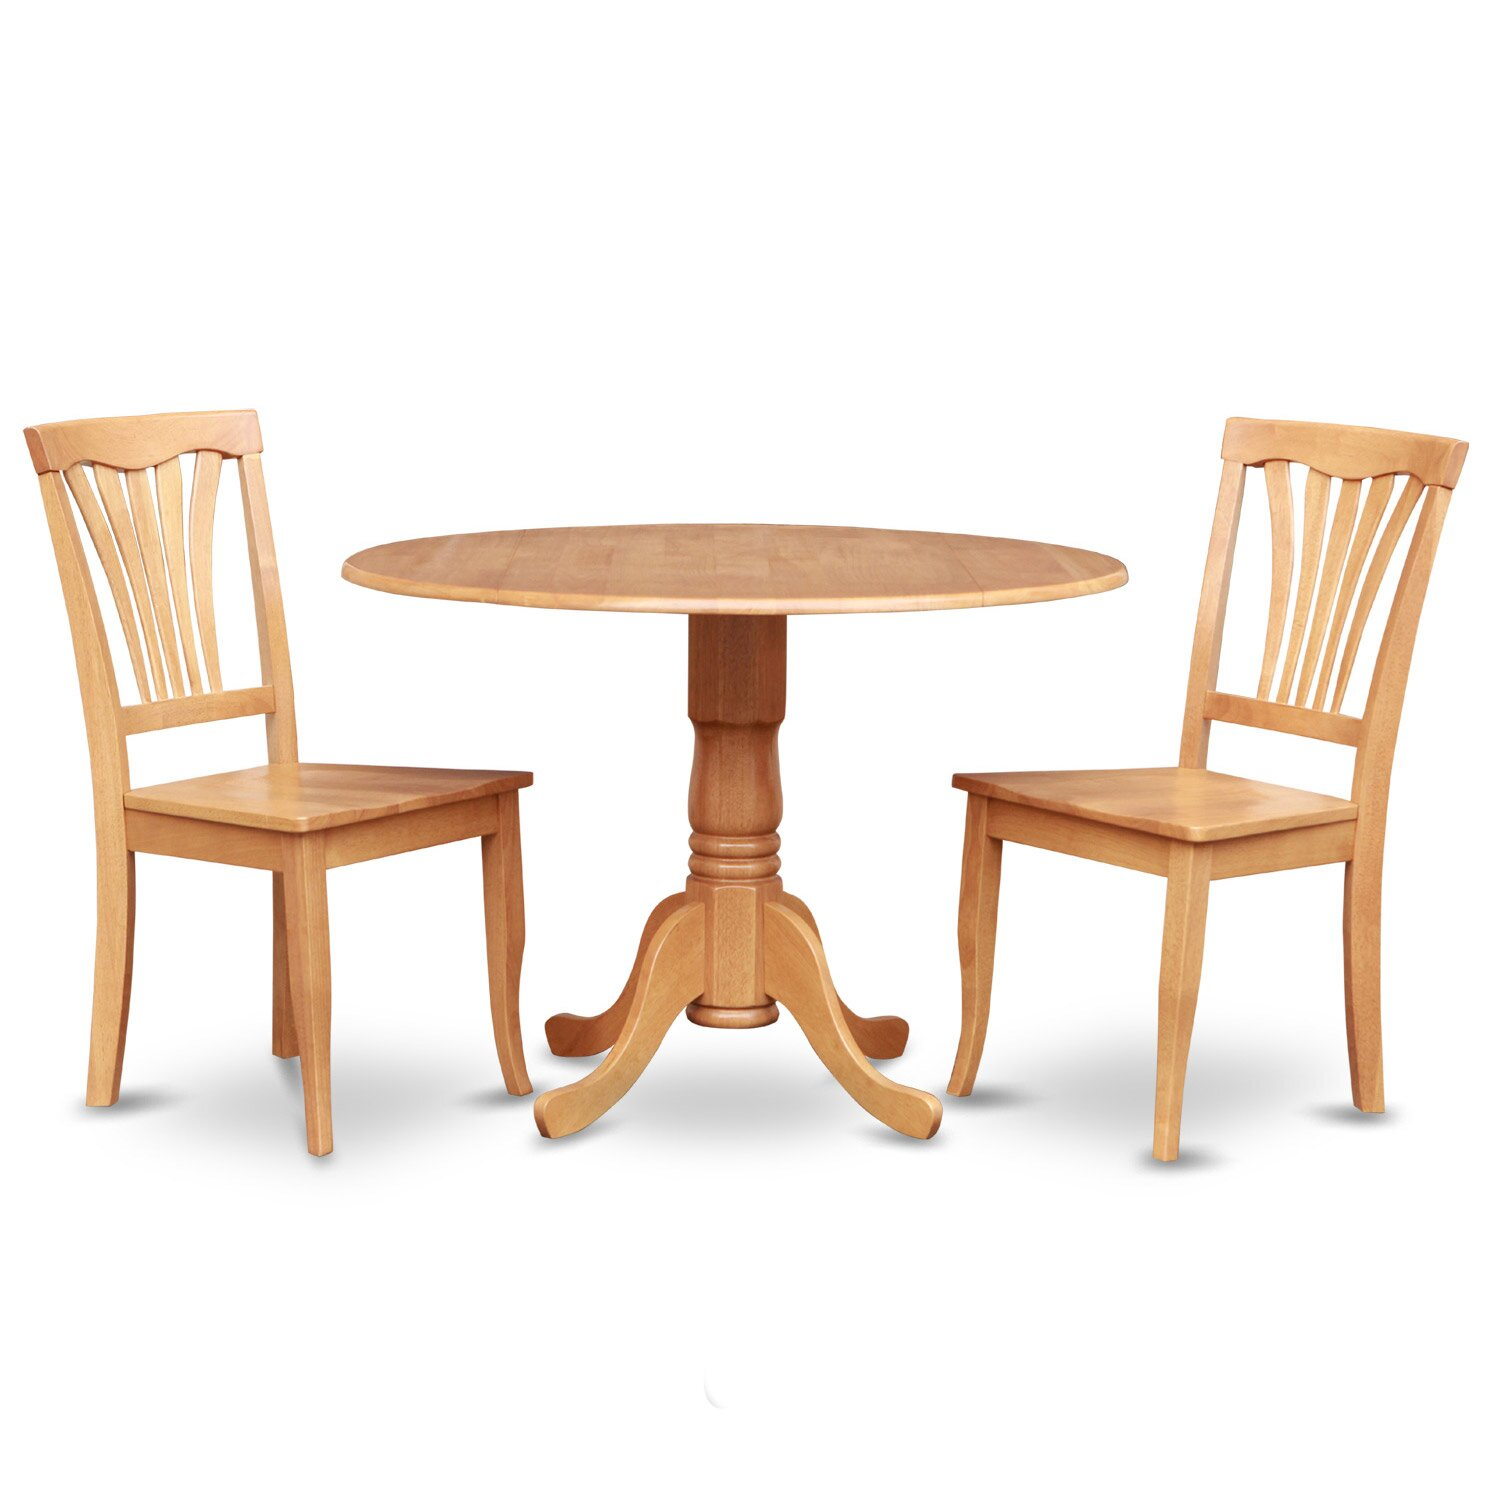 Wooden importers dublin 3 piece dining set reviews wayfair for Kitchen set table and chairs